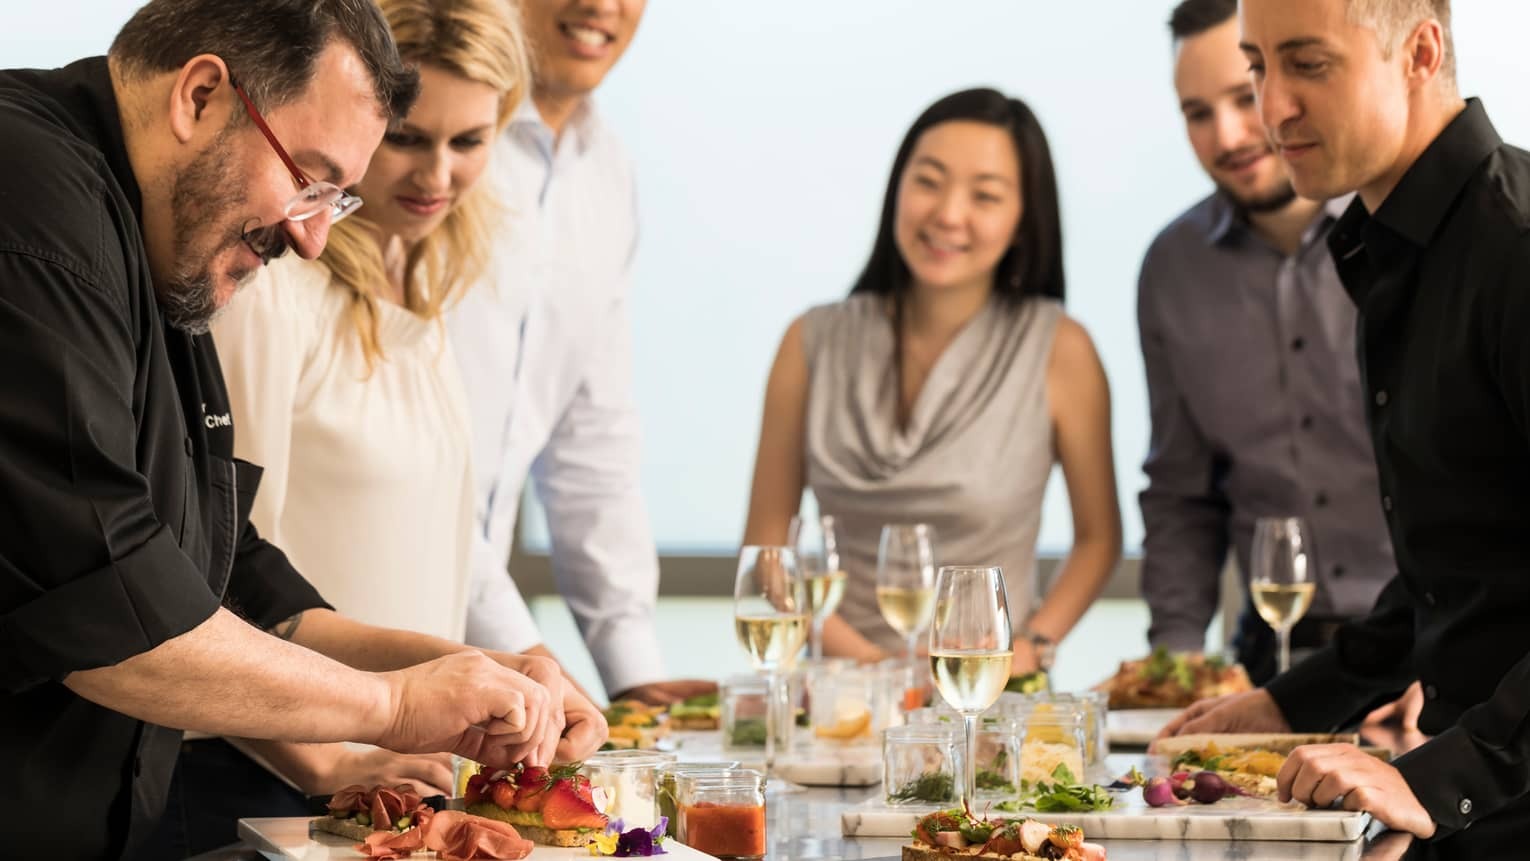 Chef assembles food at counter with smiling group of friends, white wine in glasses